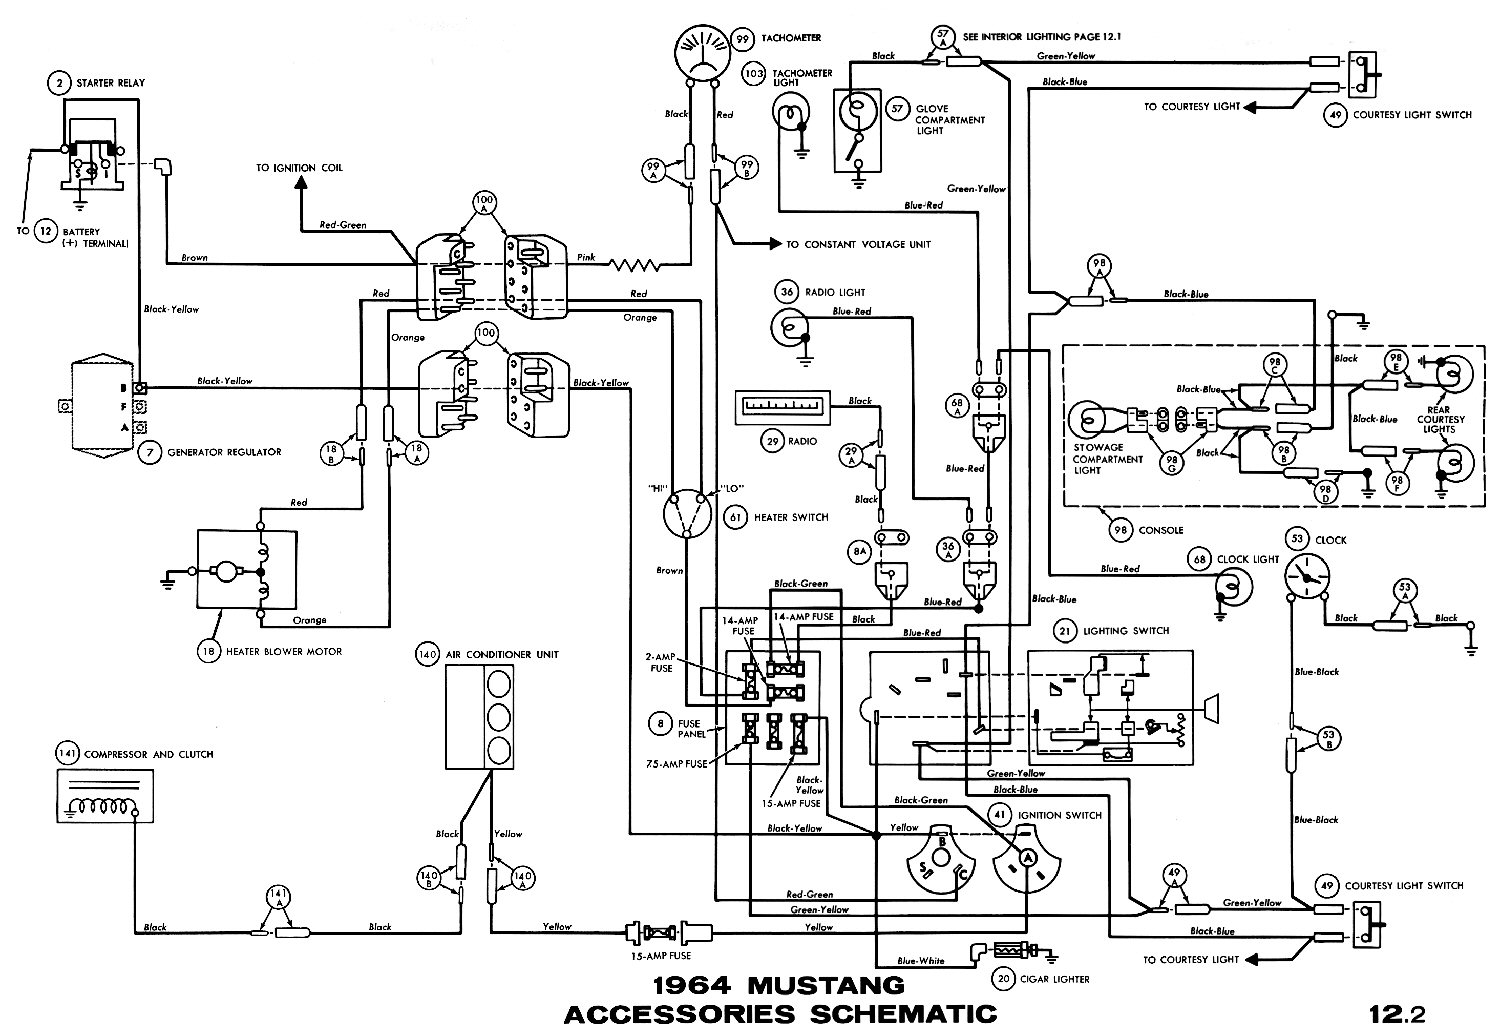 1971 Mustang Convertible Wiring Diagram Just Another 85 Alternator Diagrams Scematic Rh Jessicadonath De